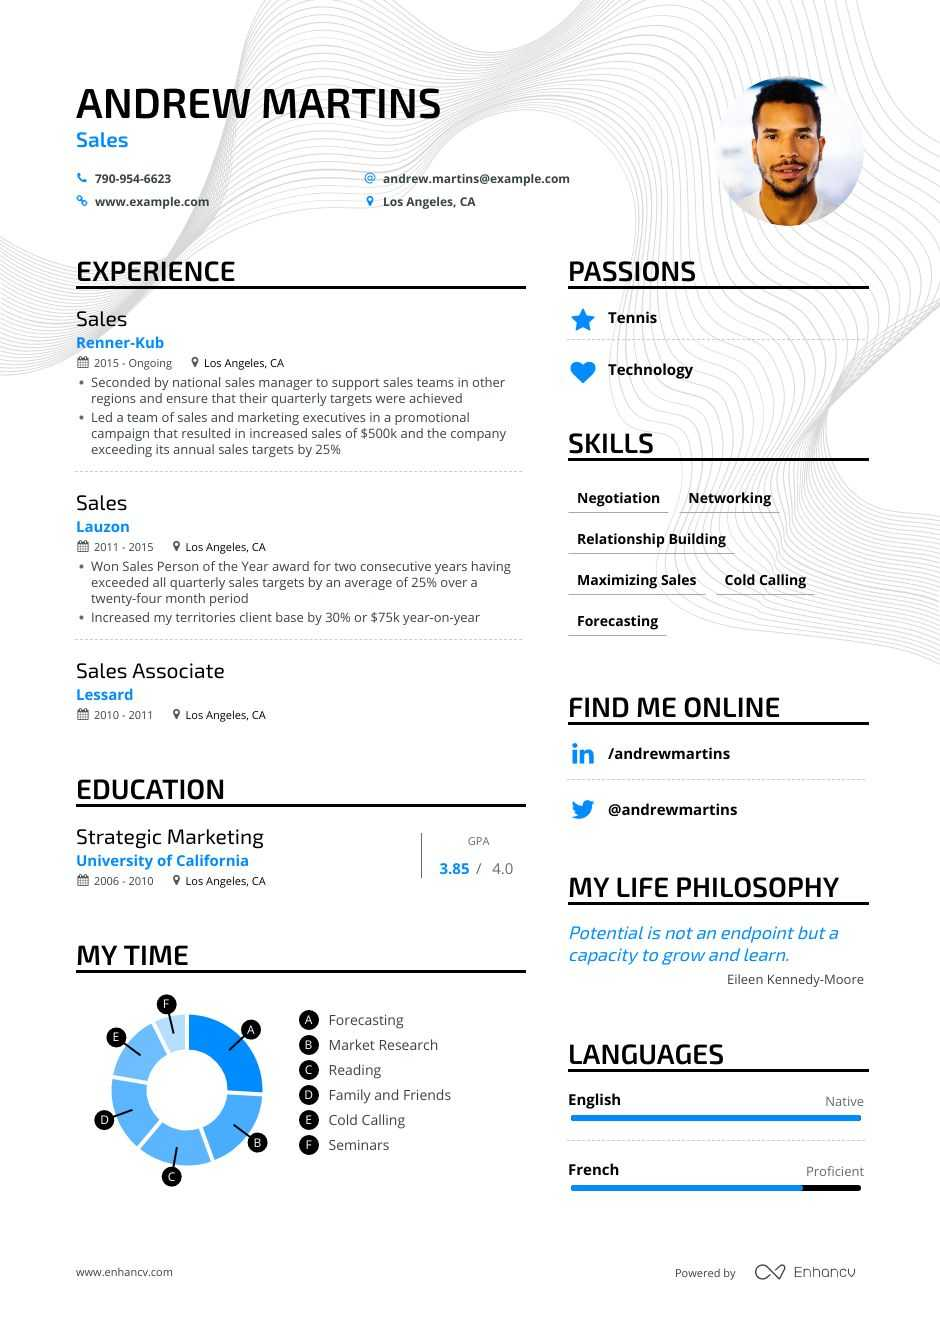 top resume examples expert tips enhancv short and engaging pitch about yourself for voice Resume Short And Engaging Pitch About Yourself Examples For Resume